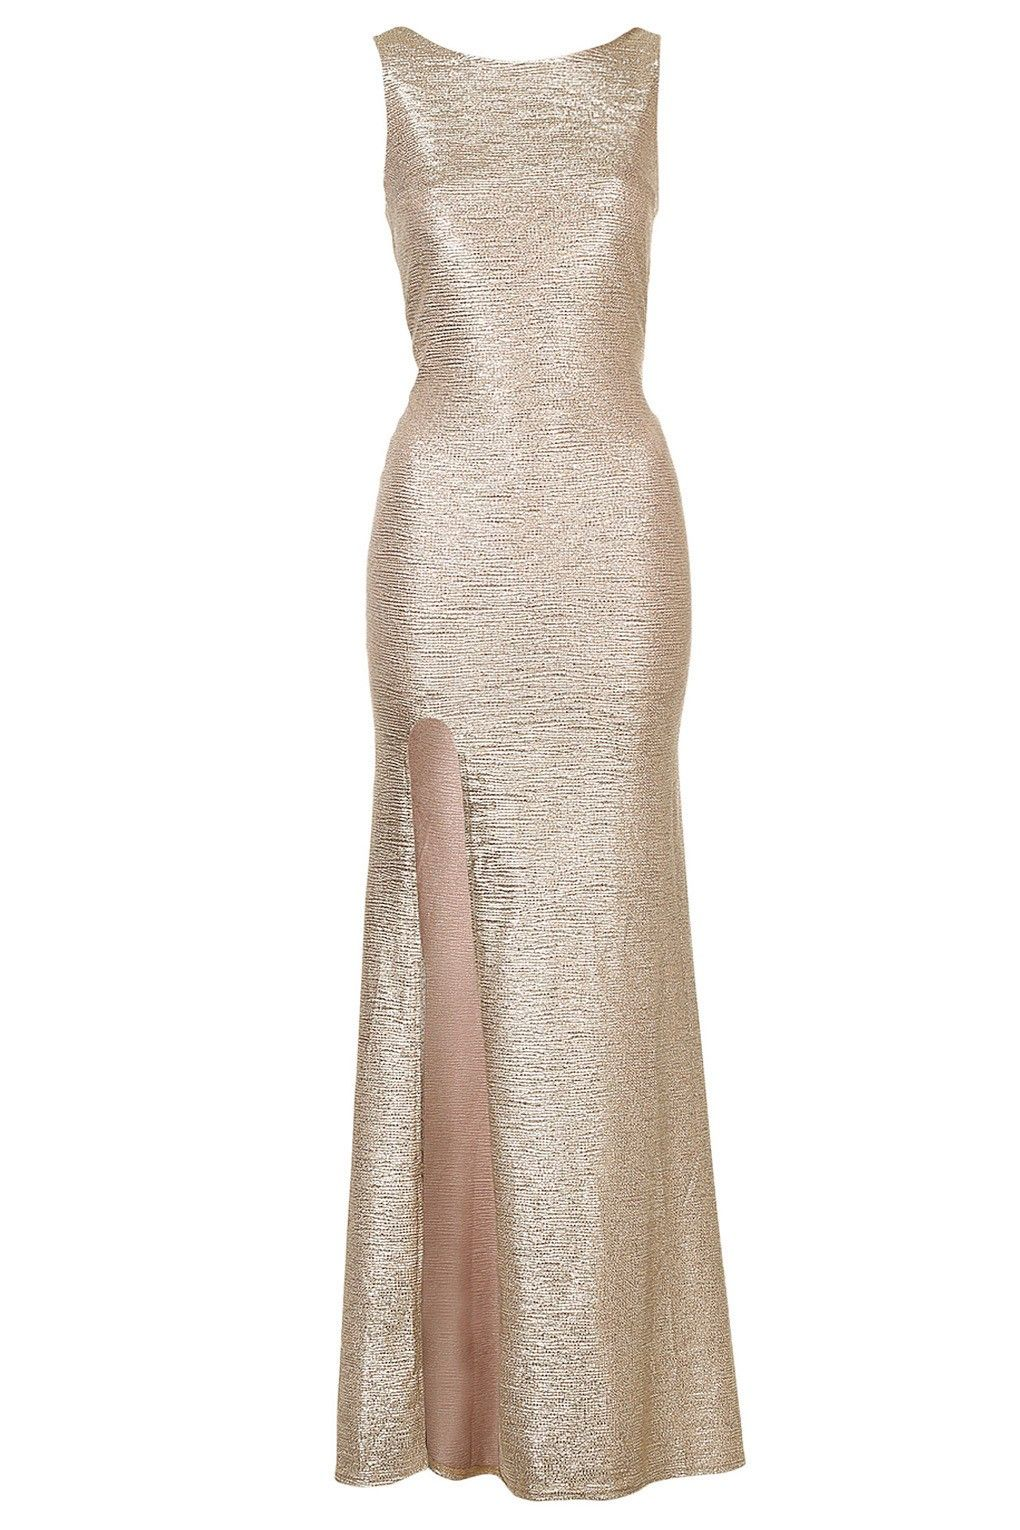 TFNC Fatima Gold Maxi Dress | Vegas baby | Pinterest | Tfnc and ...